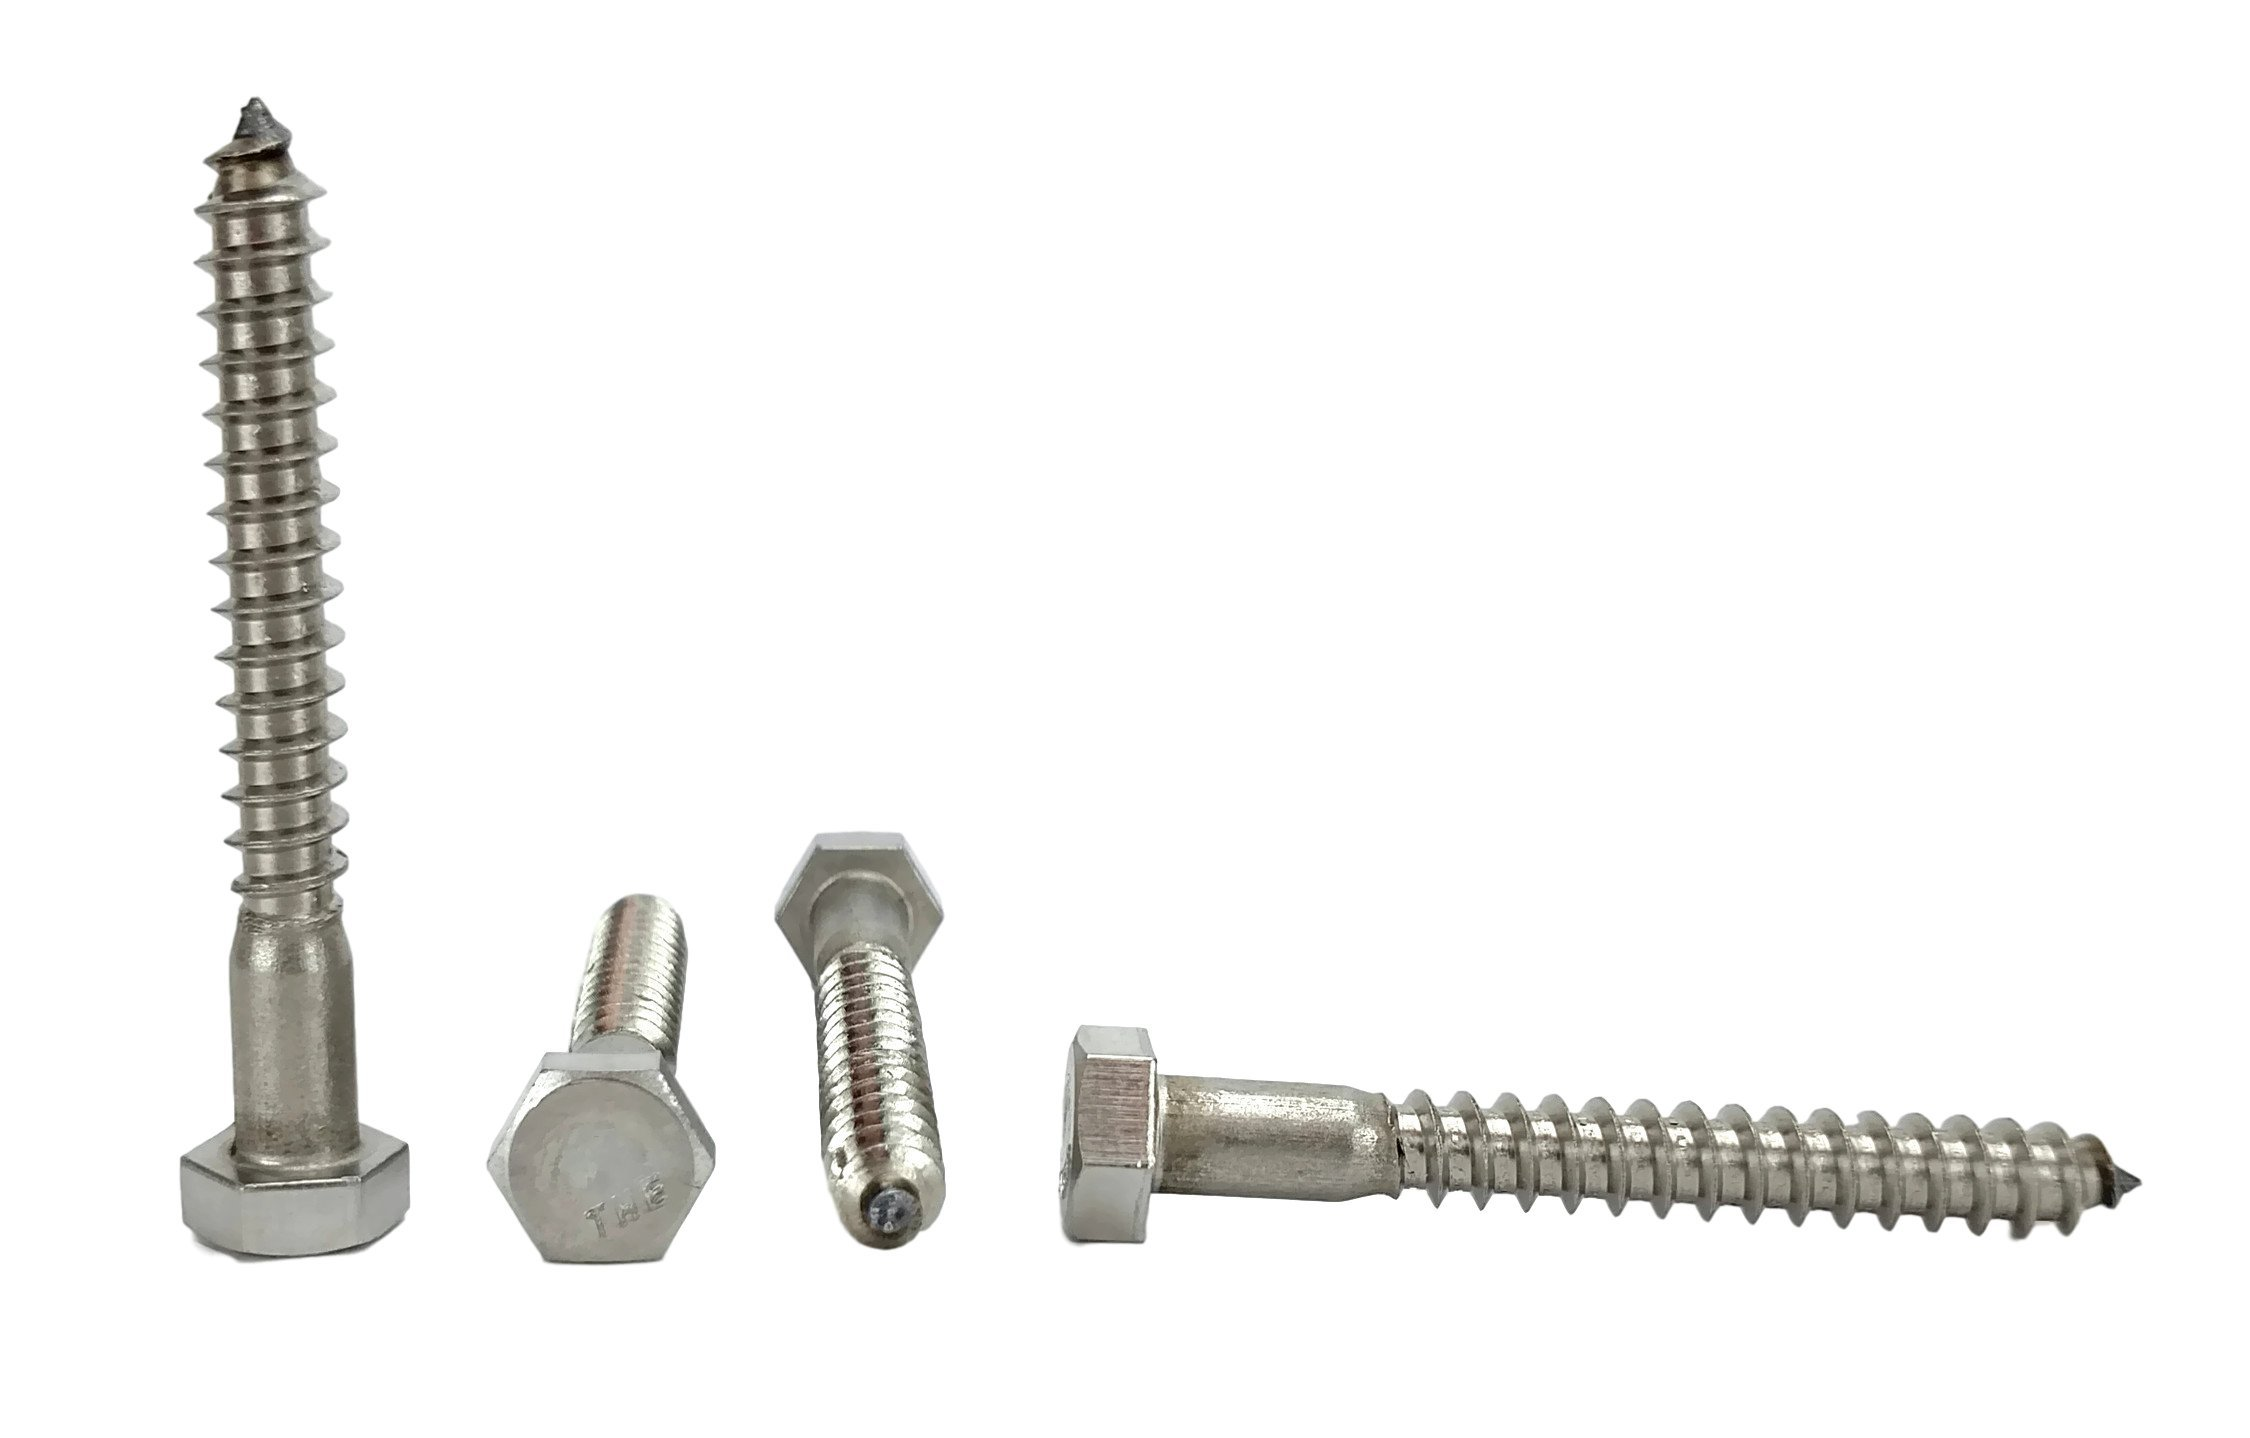 Stainless 5/16 x 2-1/2'' Hex Lag Screw (1'' To 5'' Lengths Available in Listing), 18-8 Stainless Steel, 25 pieces (5/16 x 2-1/2'')